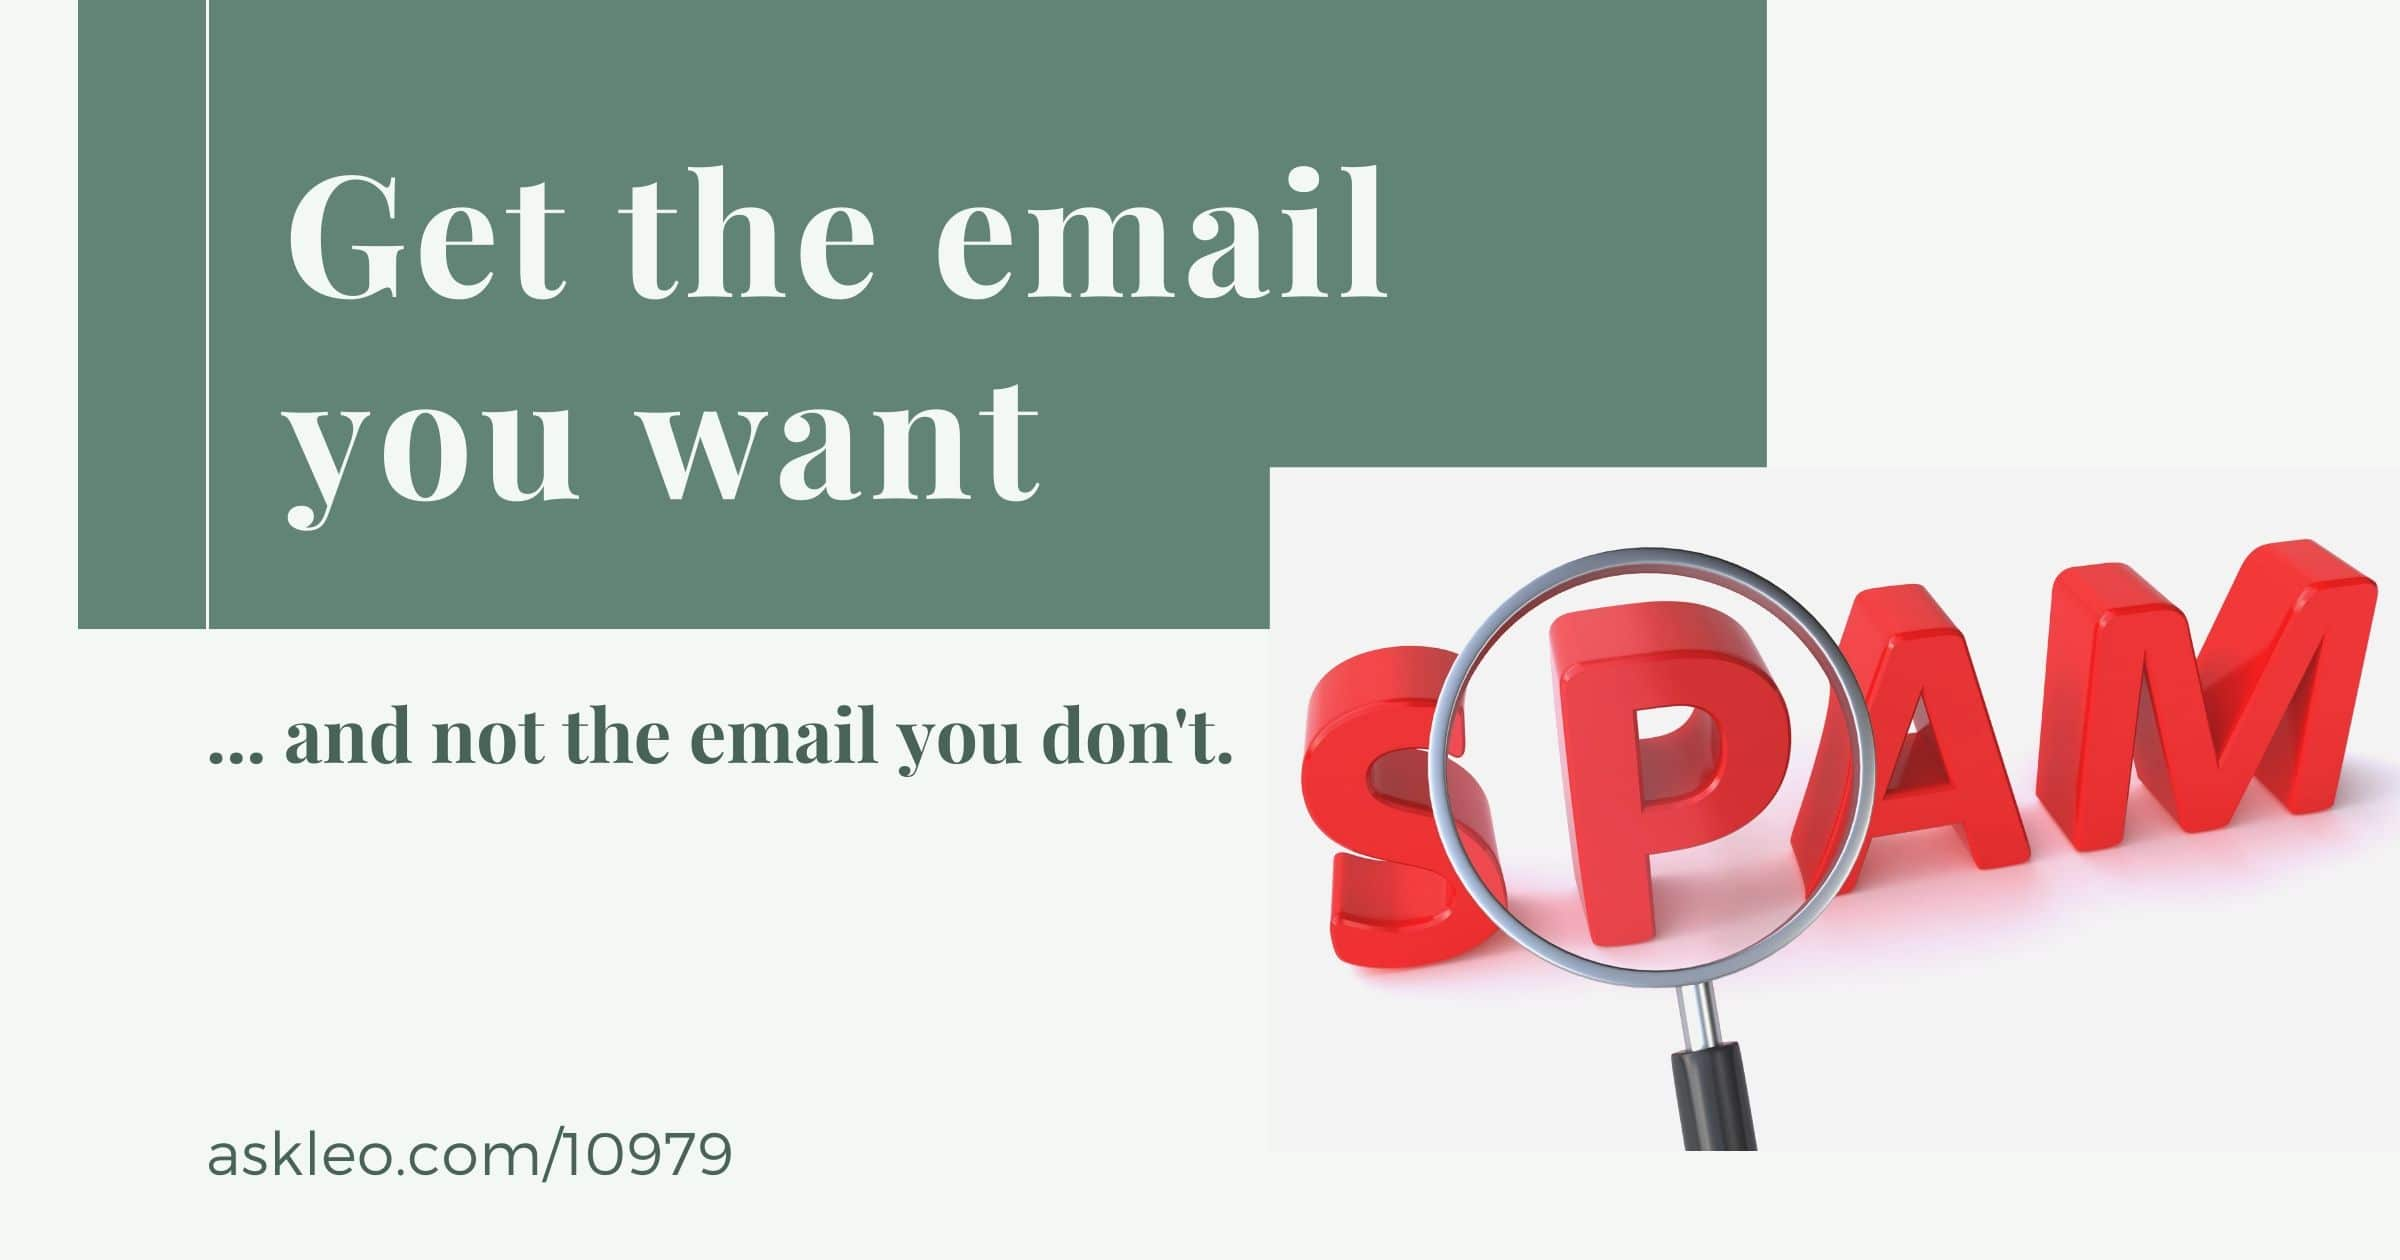 Why Am I Not Getting the Email Newsletter I Signed Up For? Three Steps to Improve the Situation